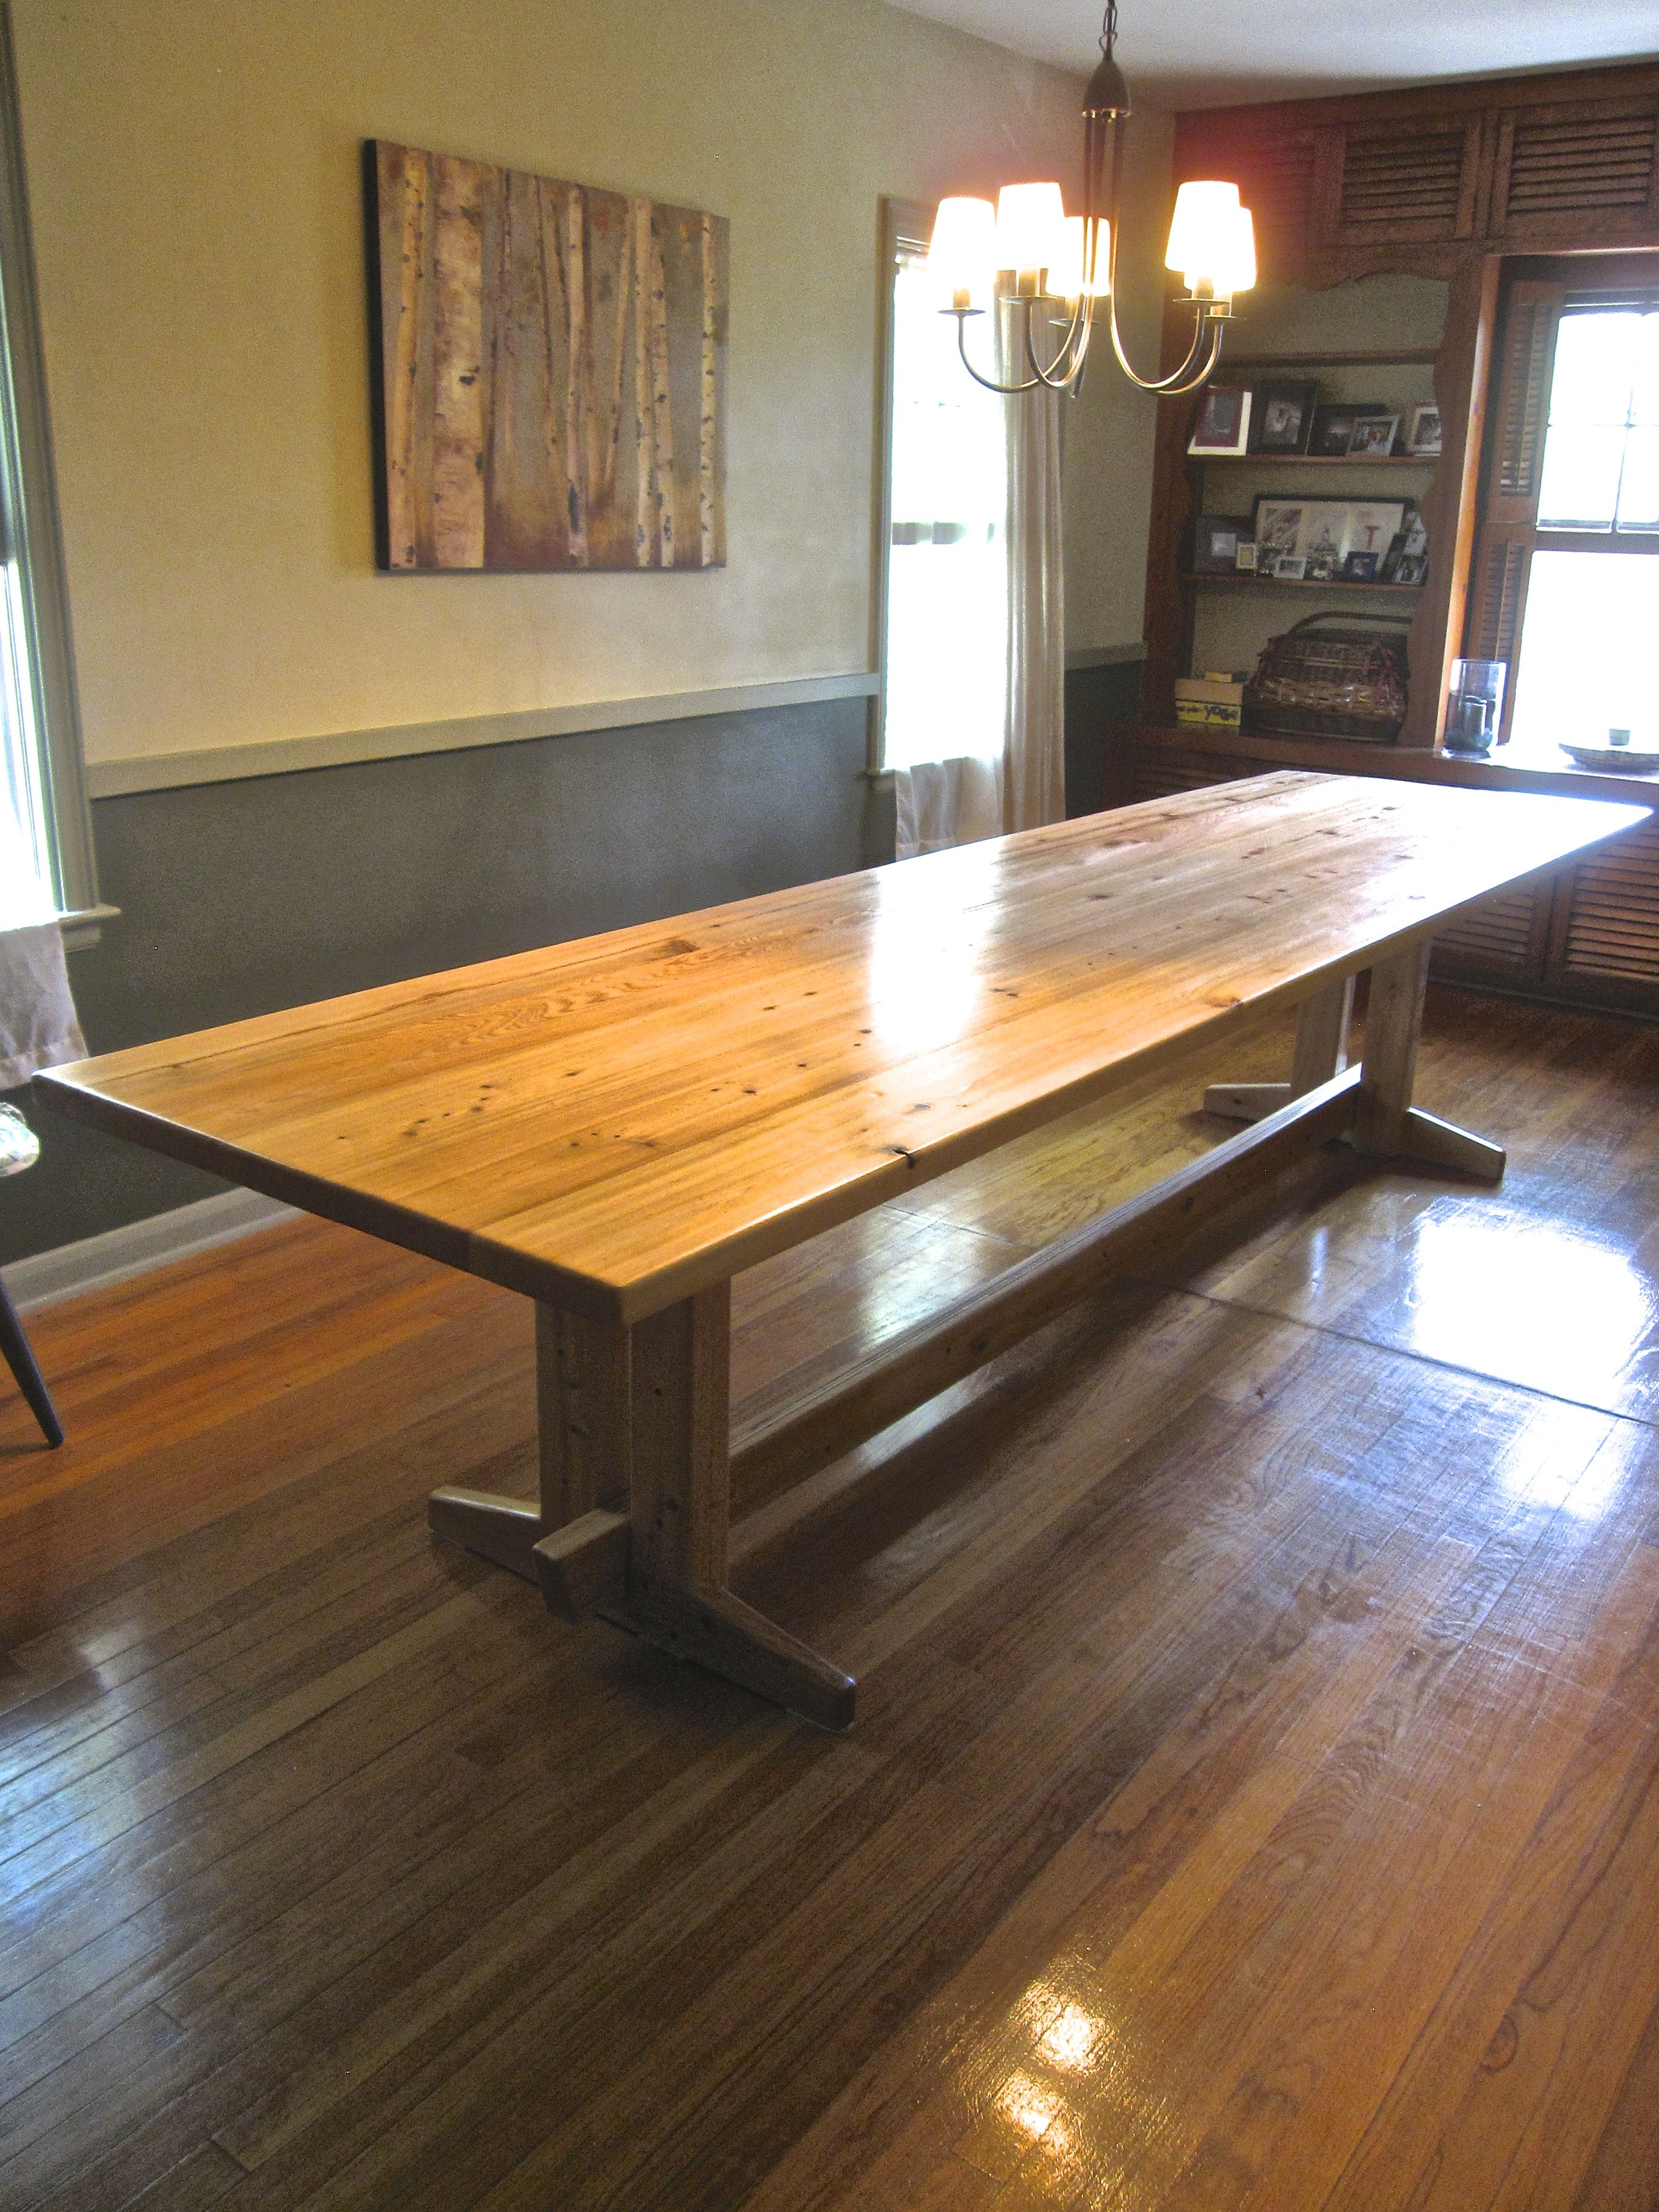 11 Ft Dining Room Table Cypress Table Dining Table Dining